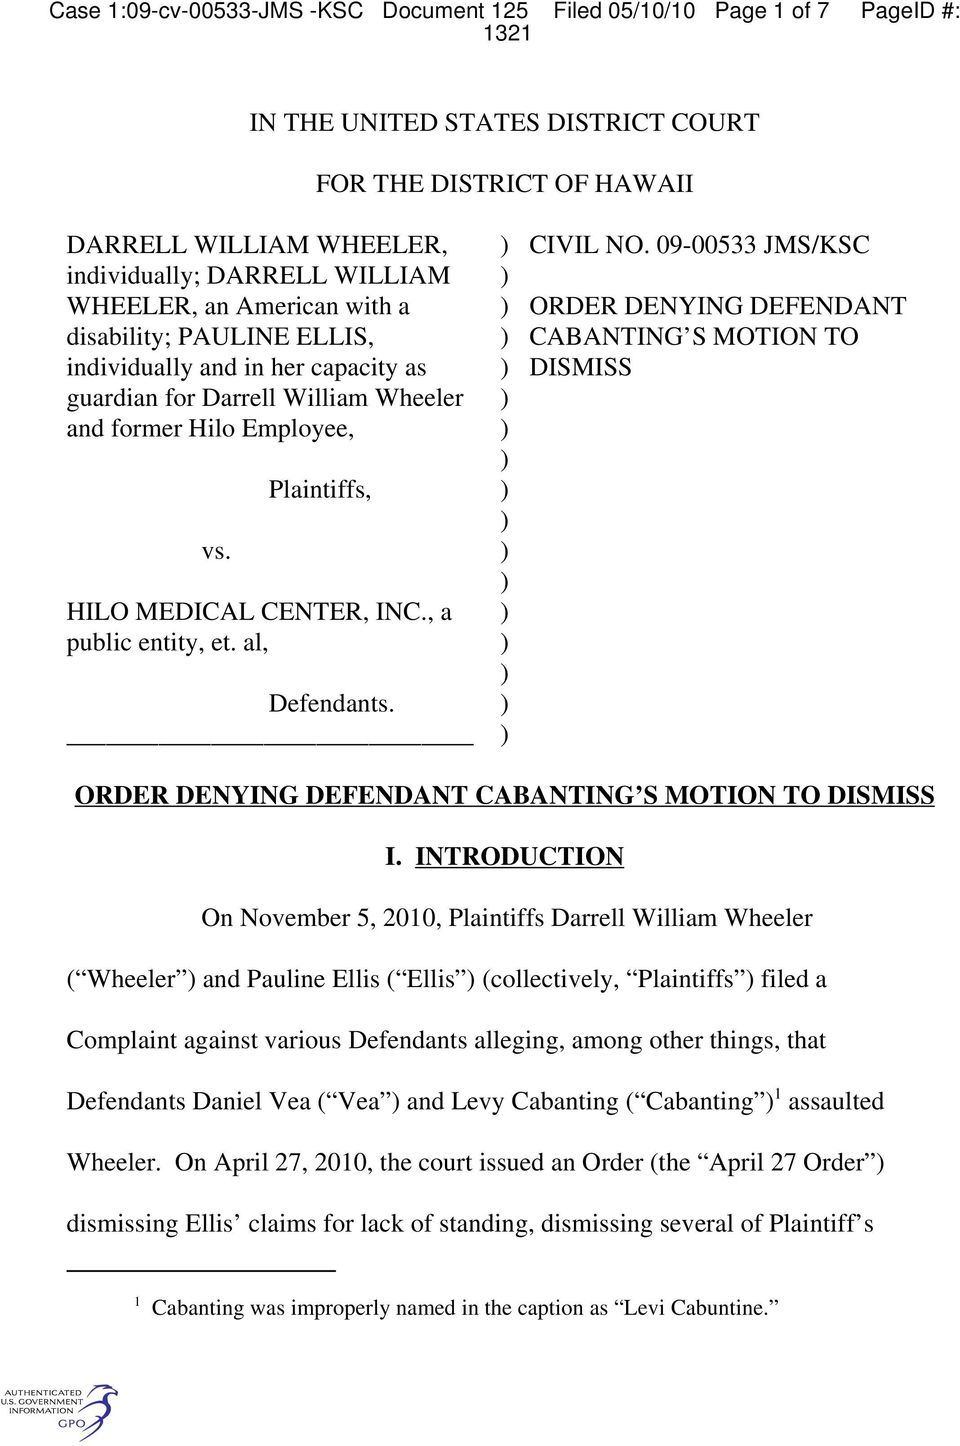 Plaintiffs, HILO MEDICAL CENTER, INC., a public entity, et. al, Defendants. CIVIL NO.